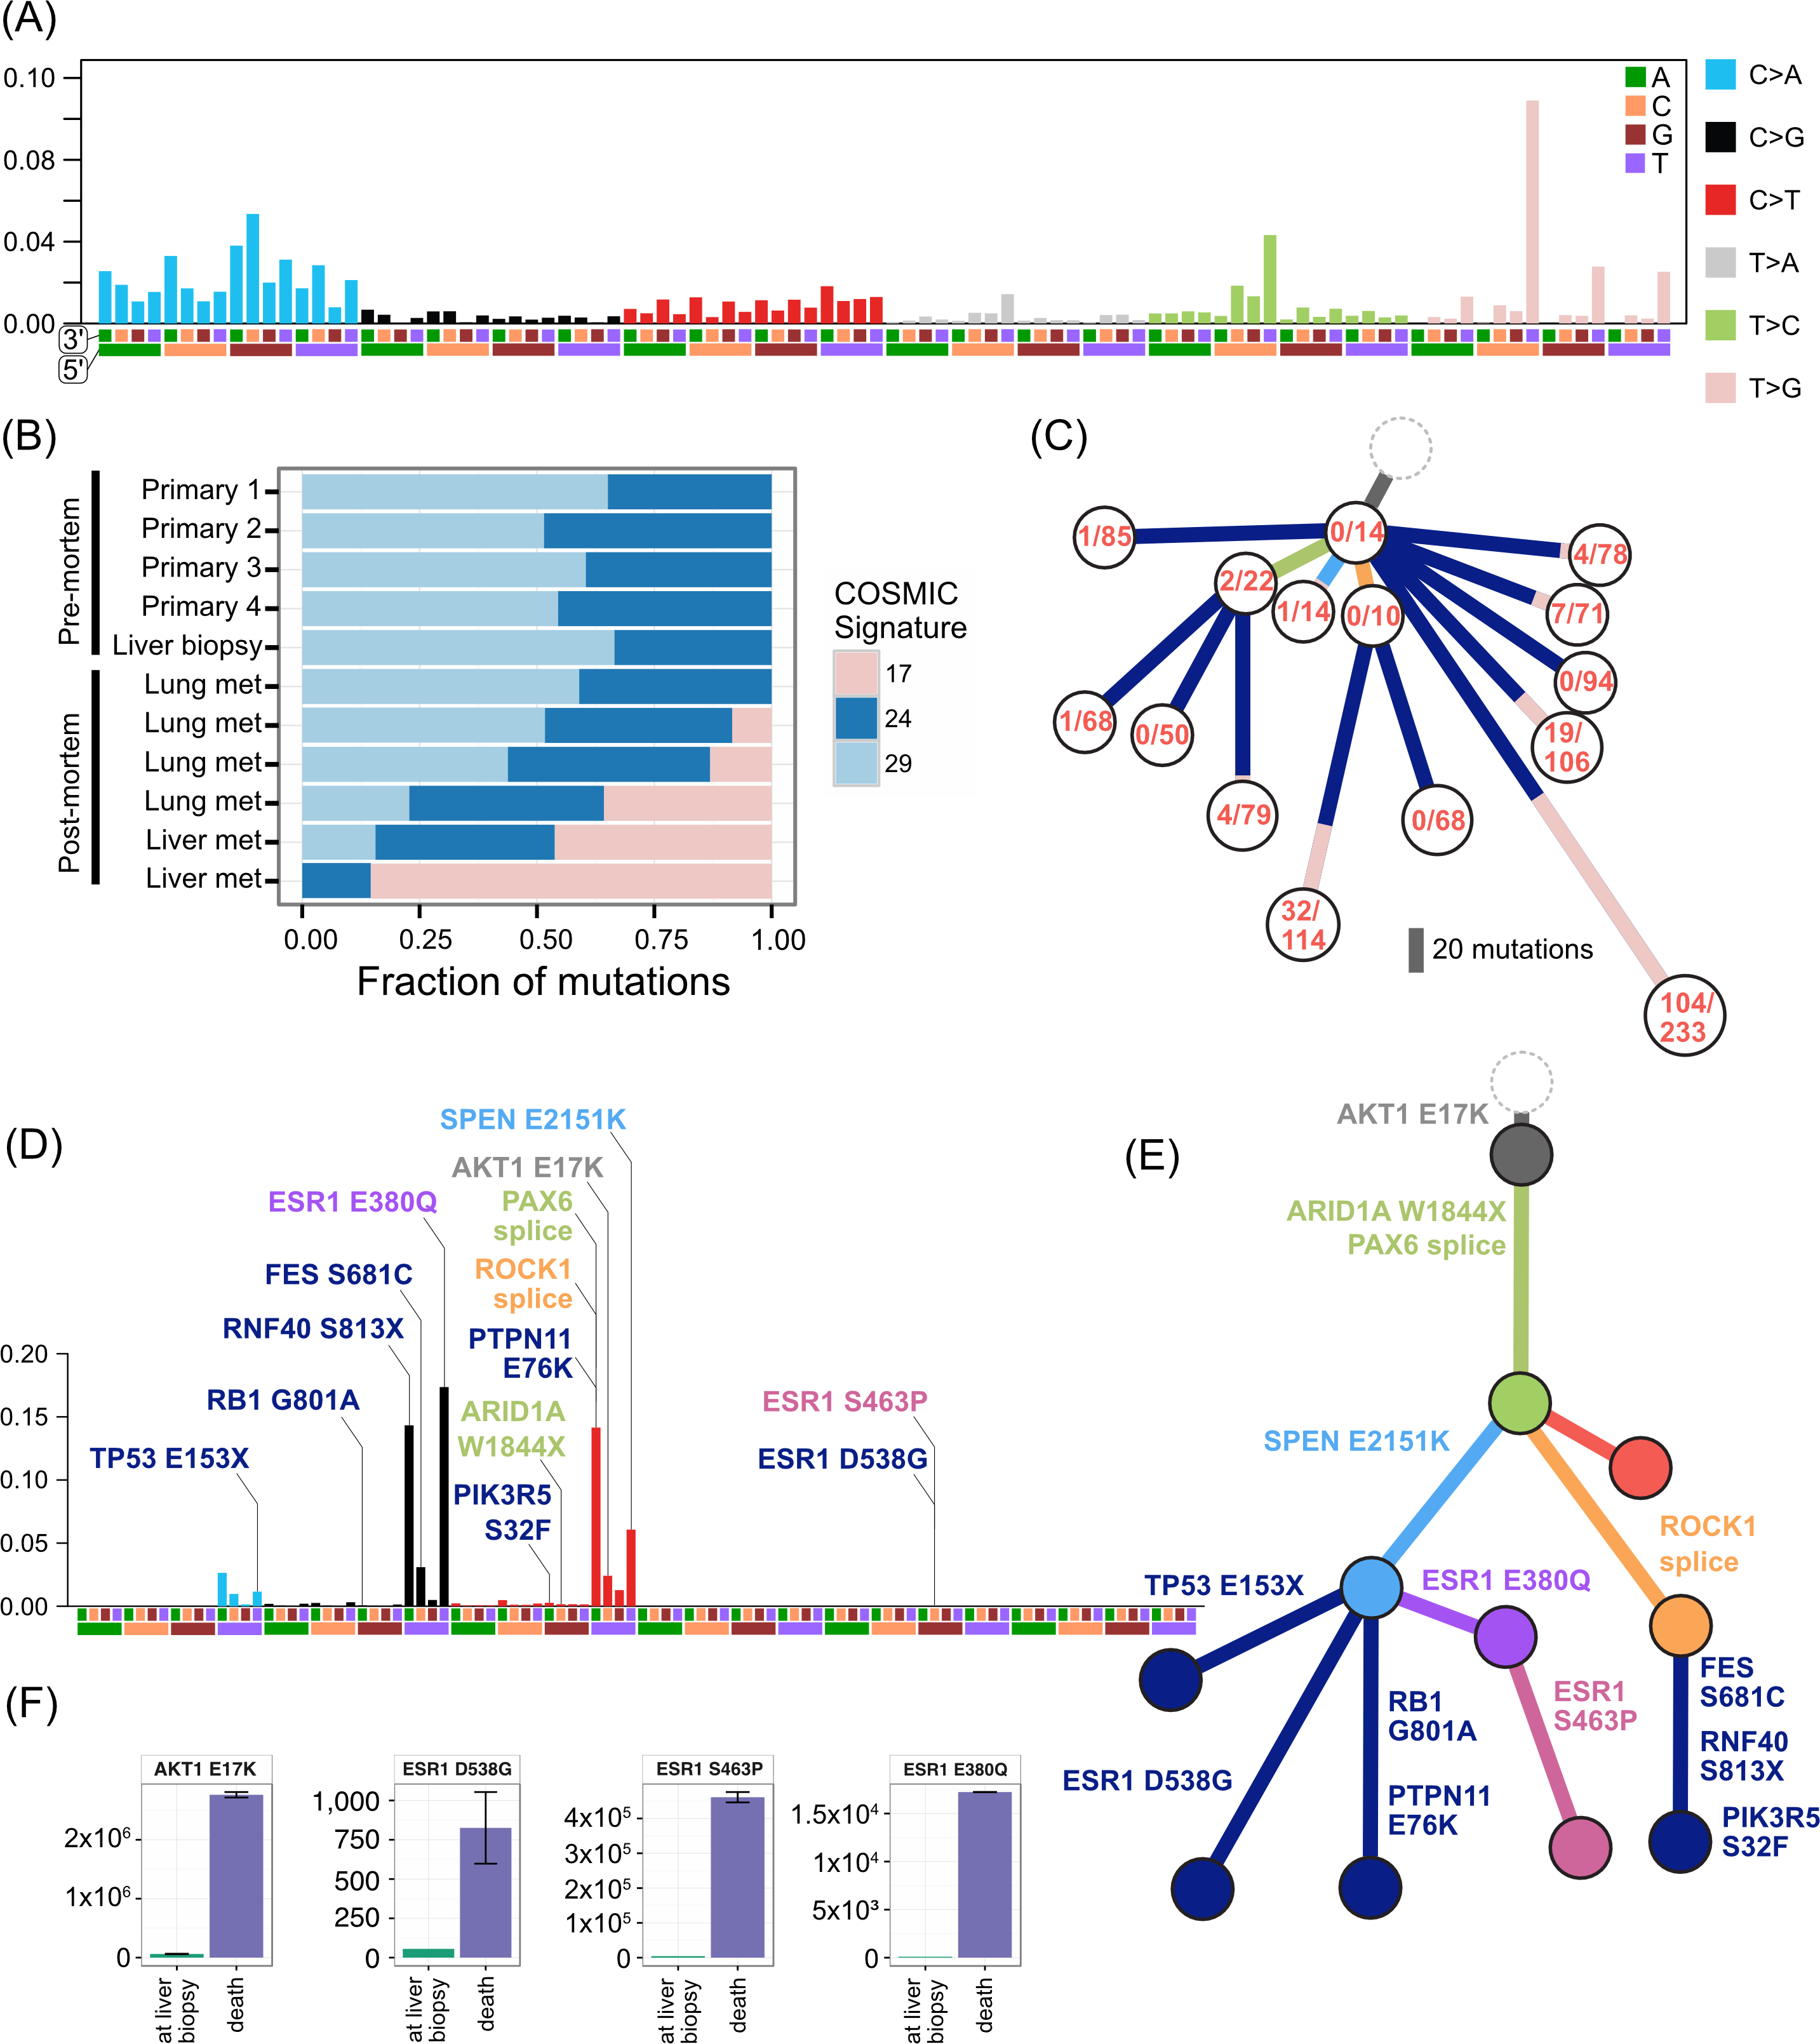 Mutational signatures in TN1 and ER2, and ctDNA assays in ER2.